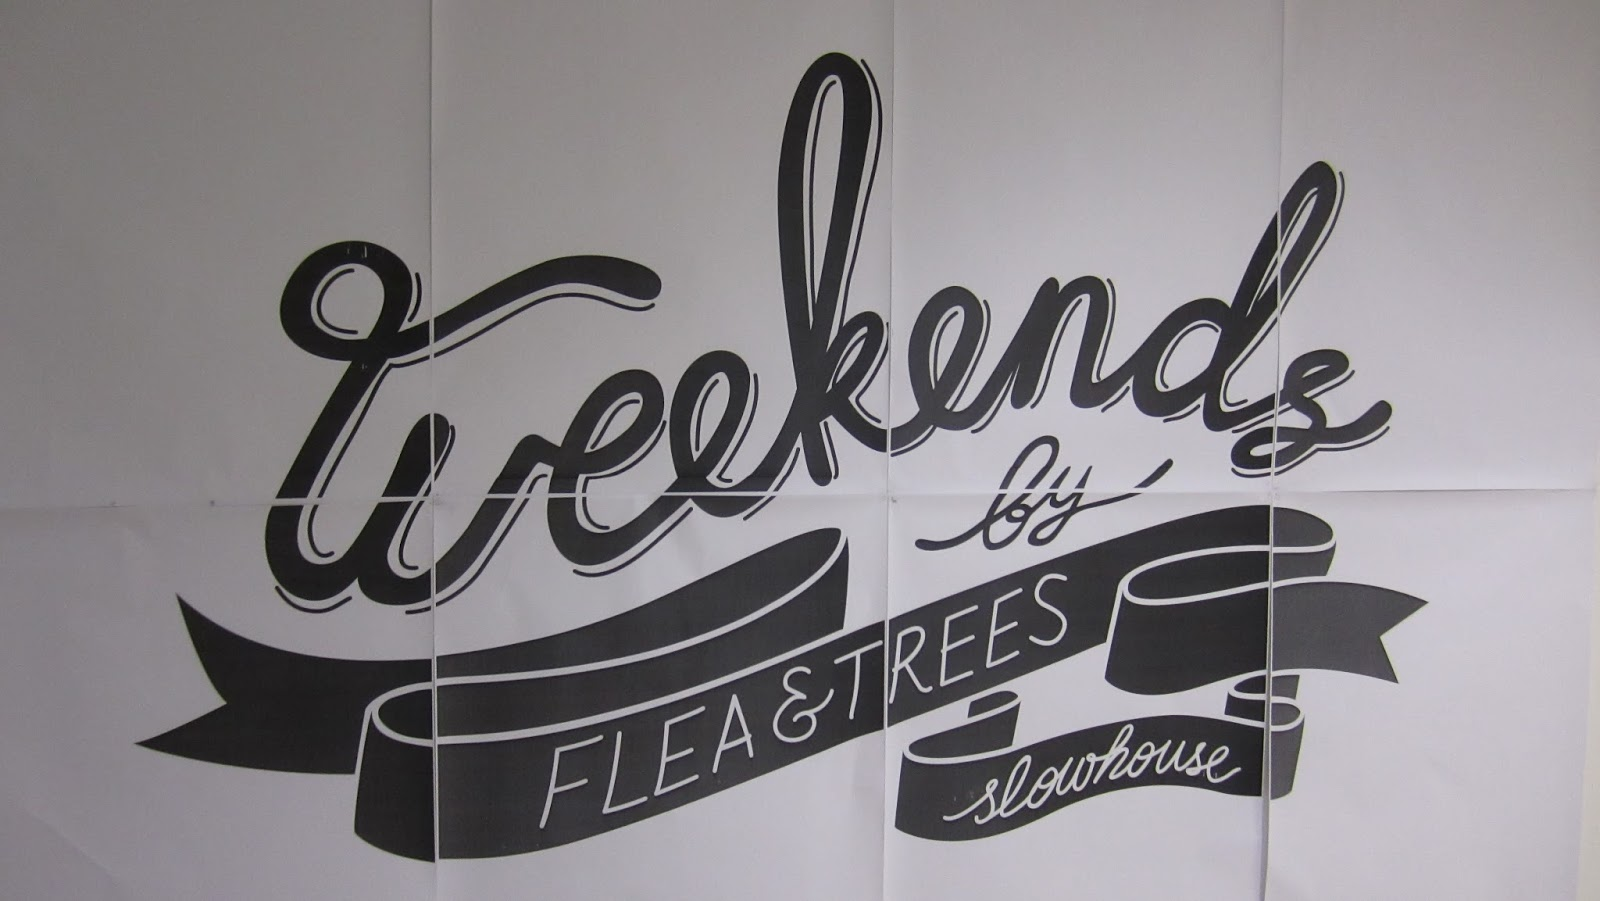 Weekends by Flea & Trees Slowhouse Singapore